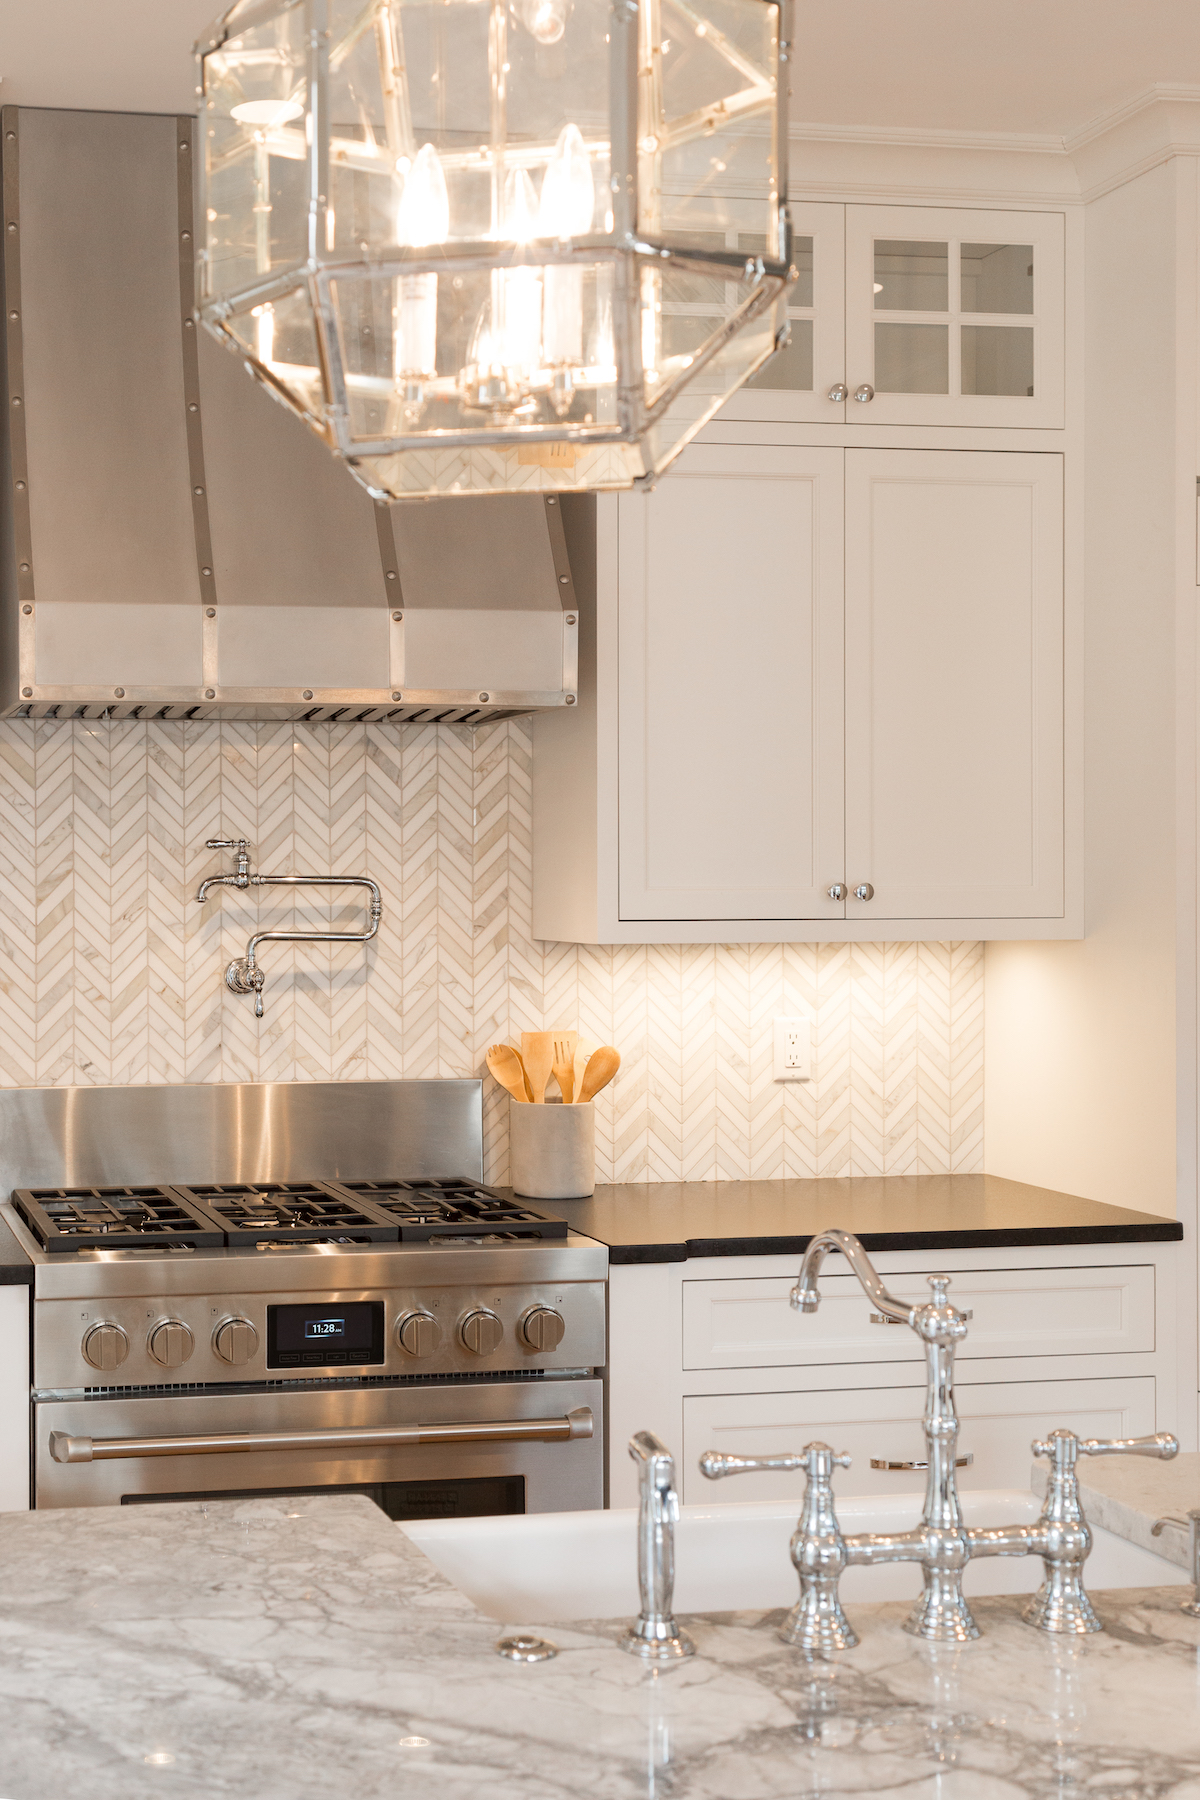 Beautiful Lighting Appliances, And Sink For New Kitchen